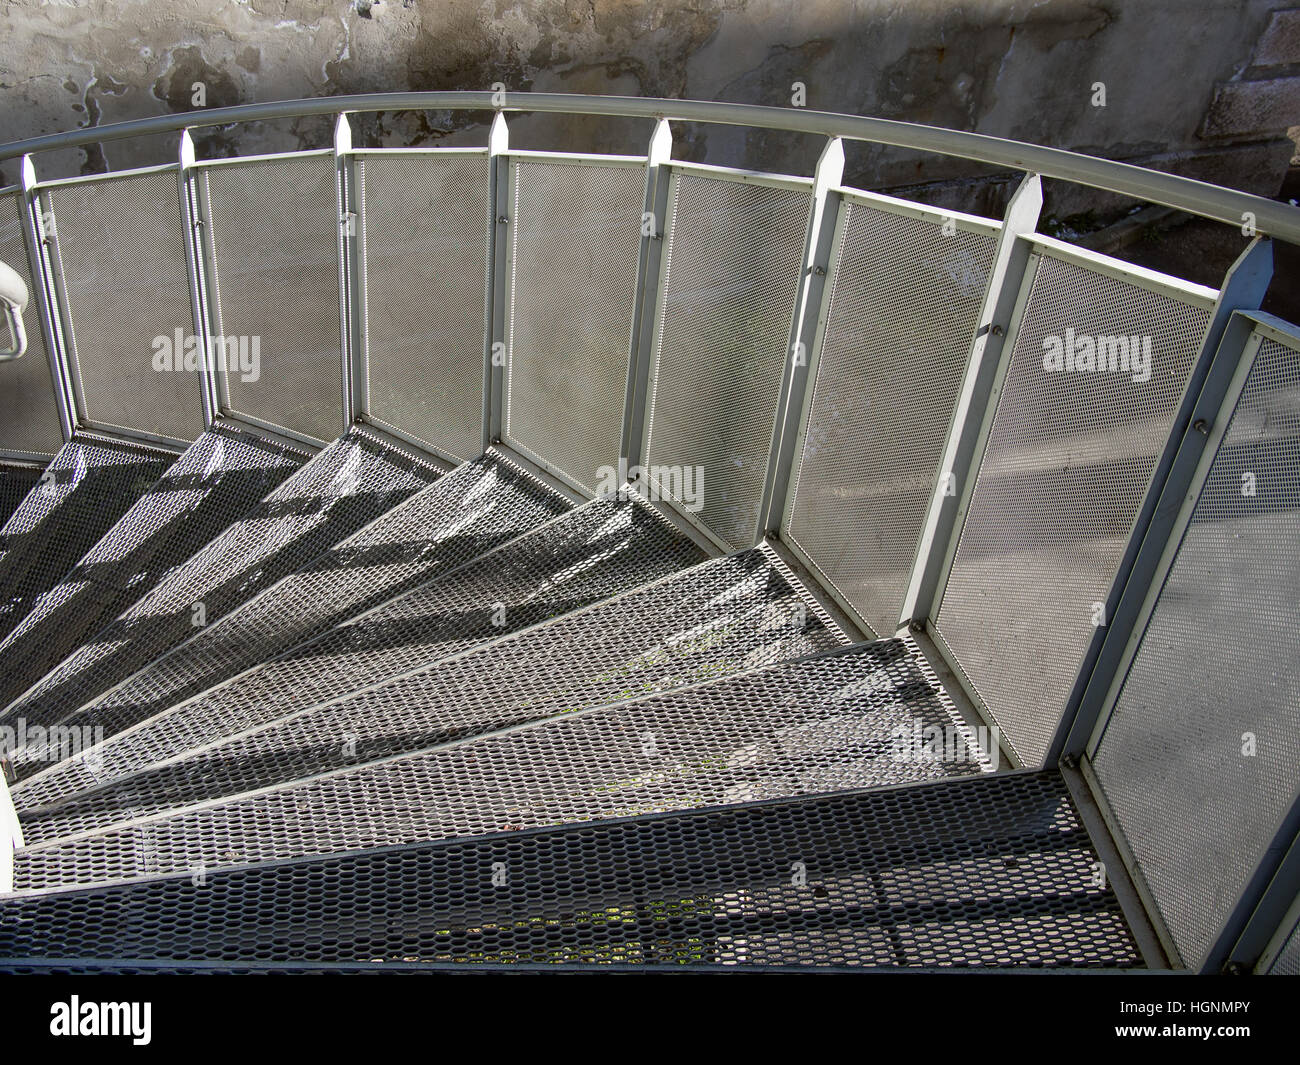 Modern spiral staircase detail. Architecture. - Stock Image